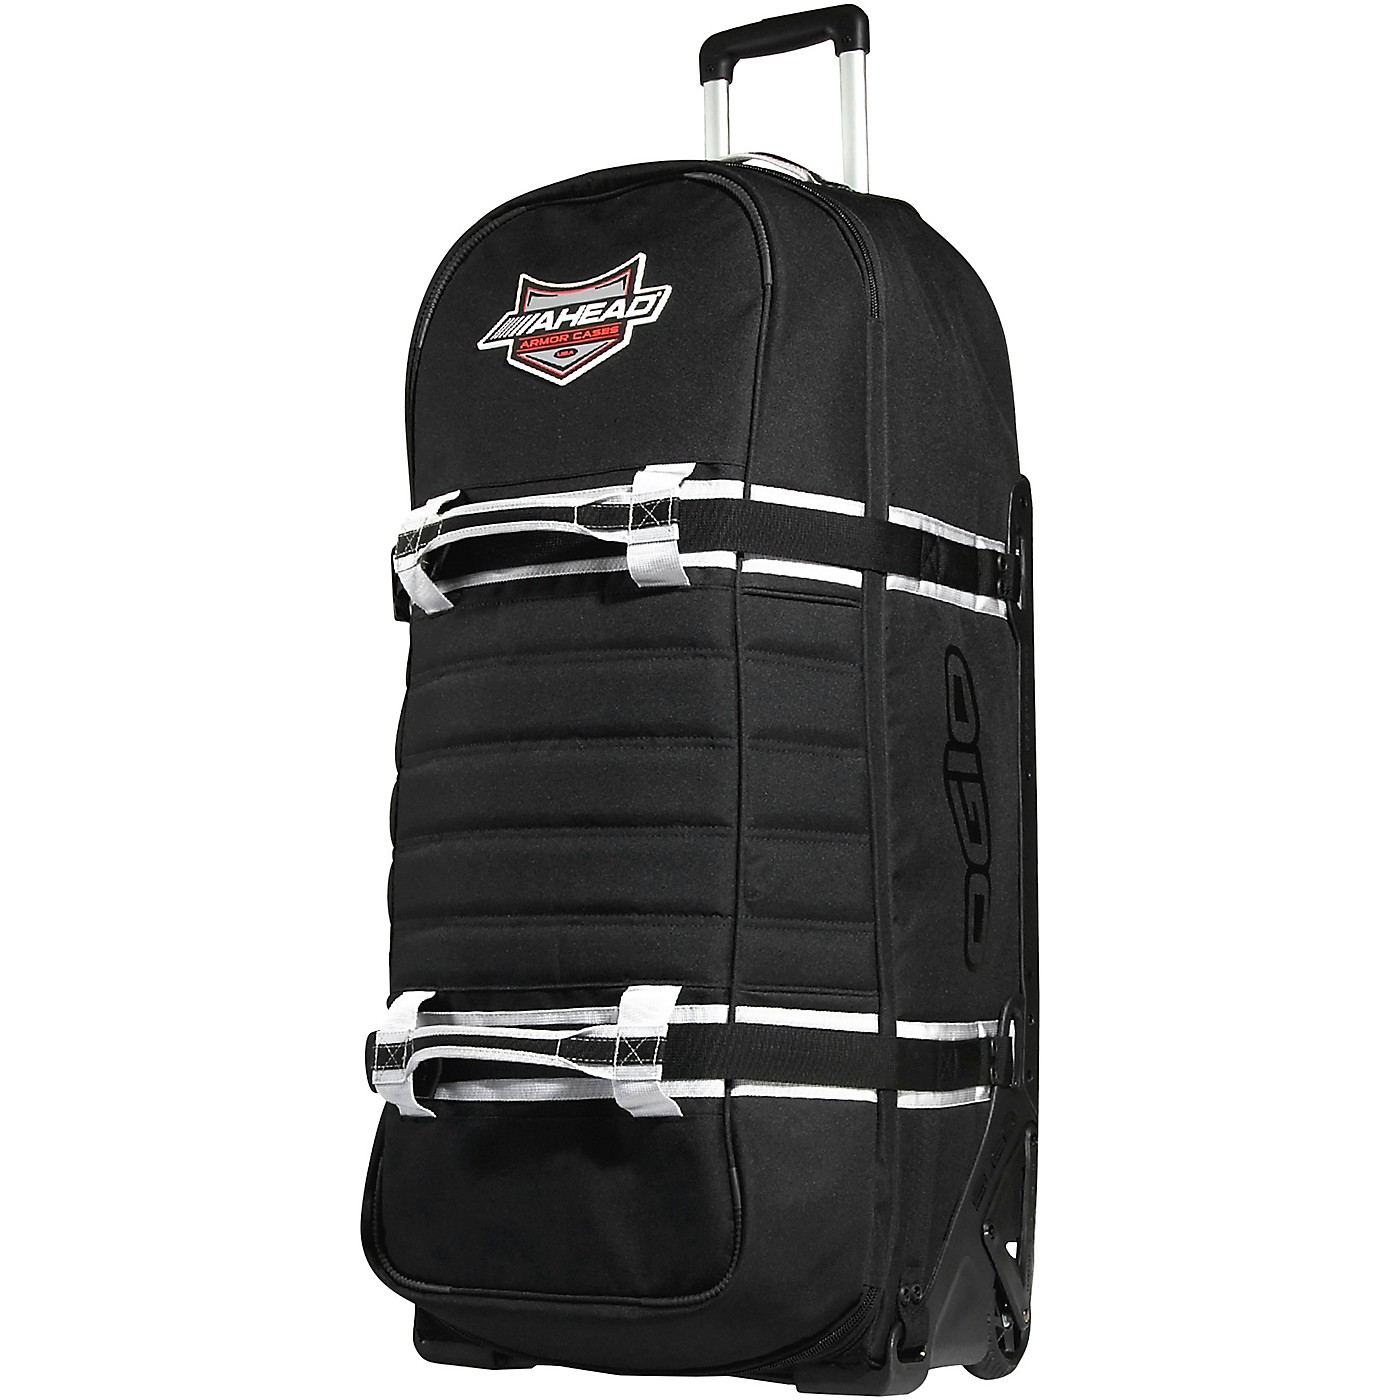 Ahead Armor Cases Ogio Engineered Hardware Sled with Wheels thumbnail